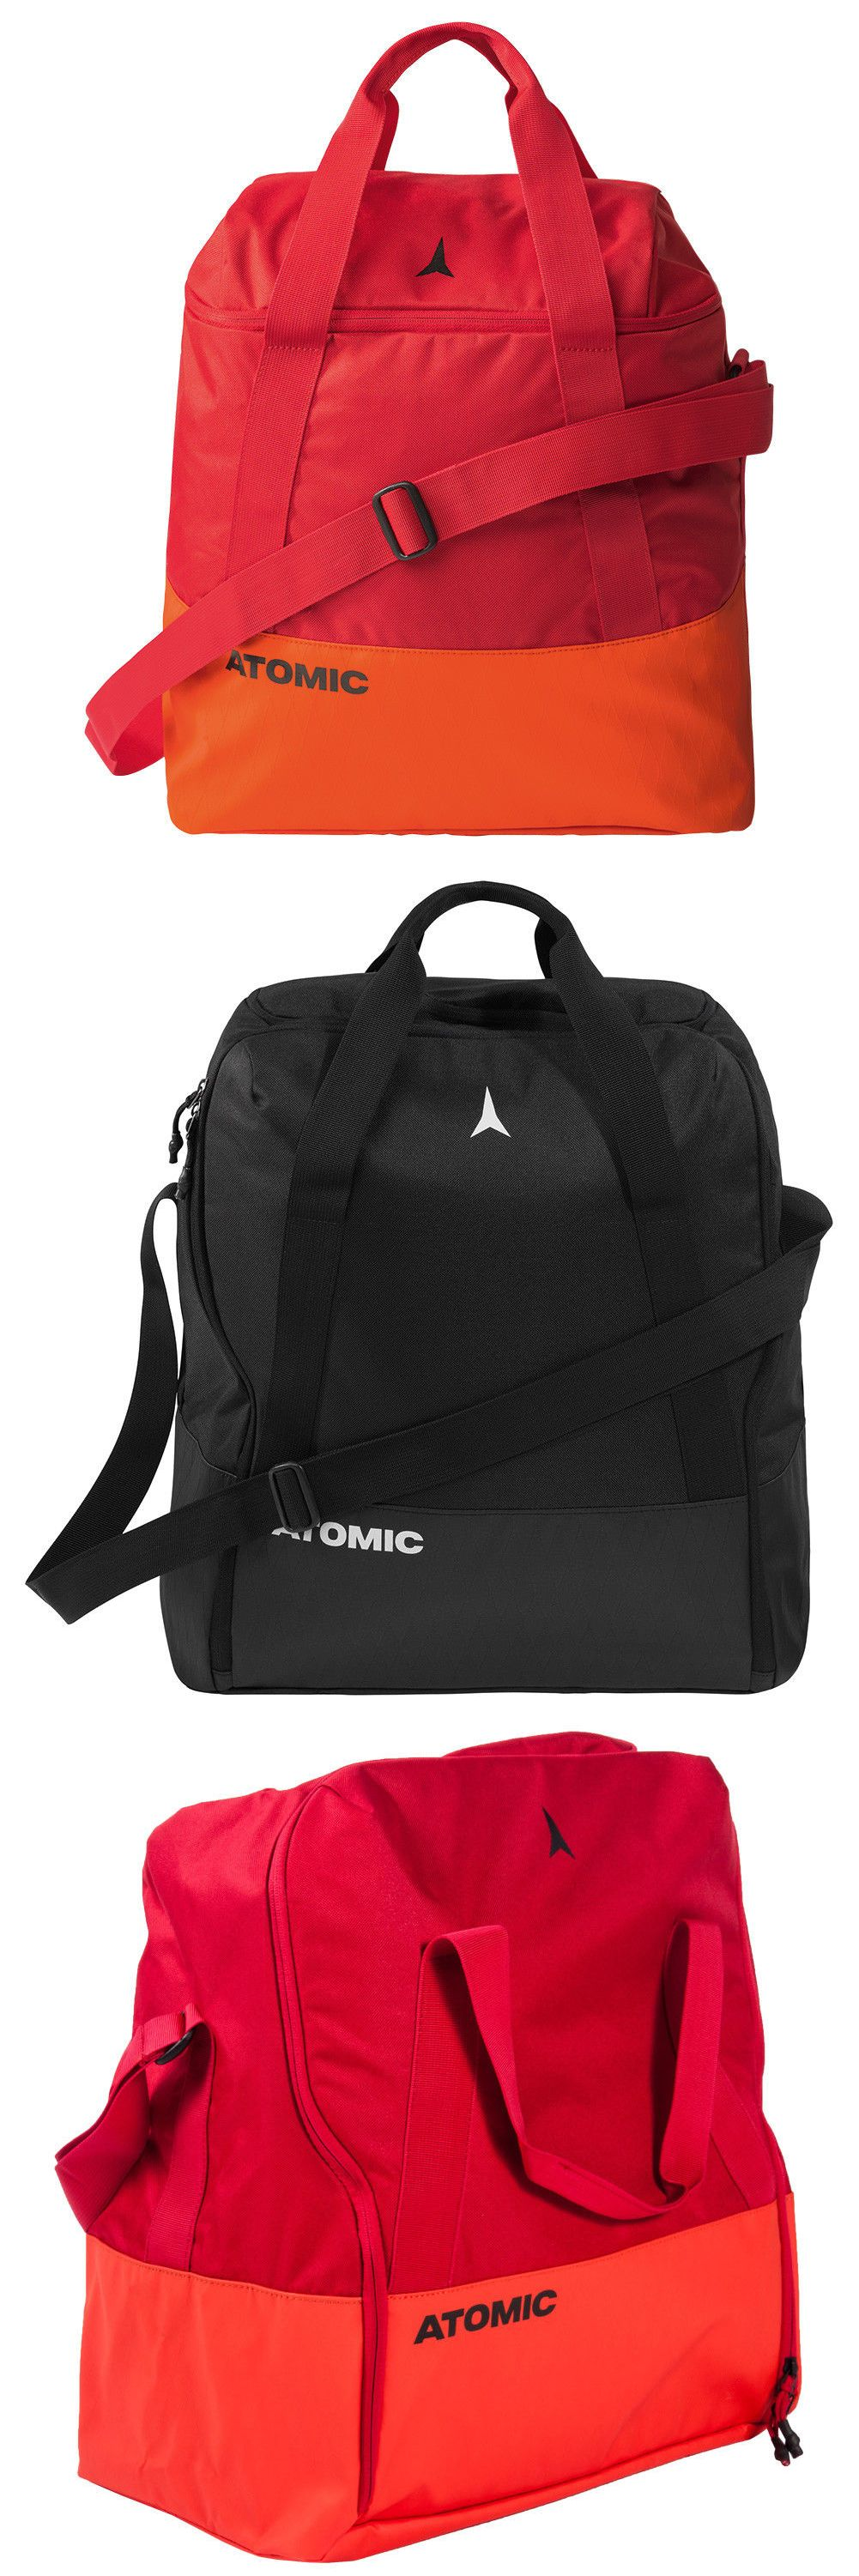 acfd96632d42 Bags and Backpacks 21229  2019 Atomic Boot And Helmet Bag For Snow Sports  New Red Or Black Al50383 -  BUY IT NOW ONLY   40 on  eBay  backpacks   atomic ...